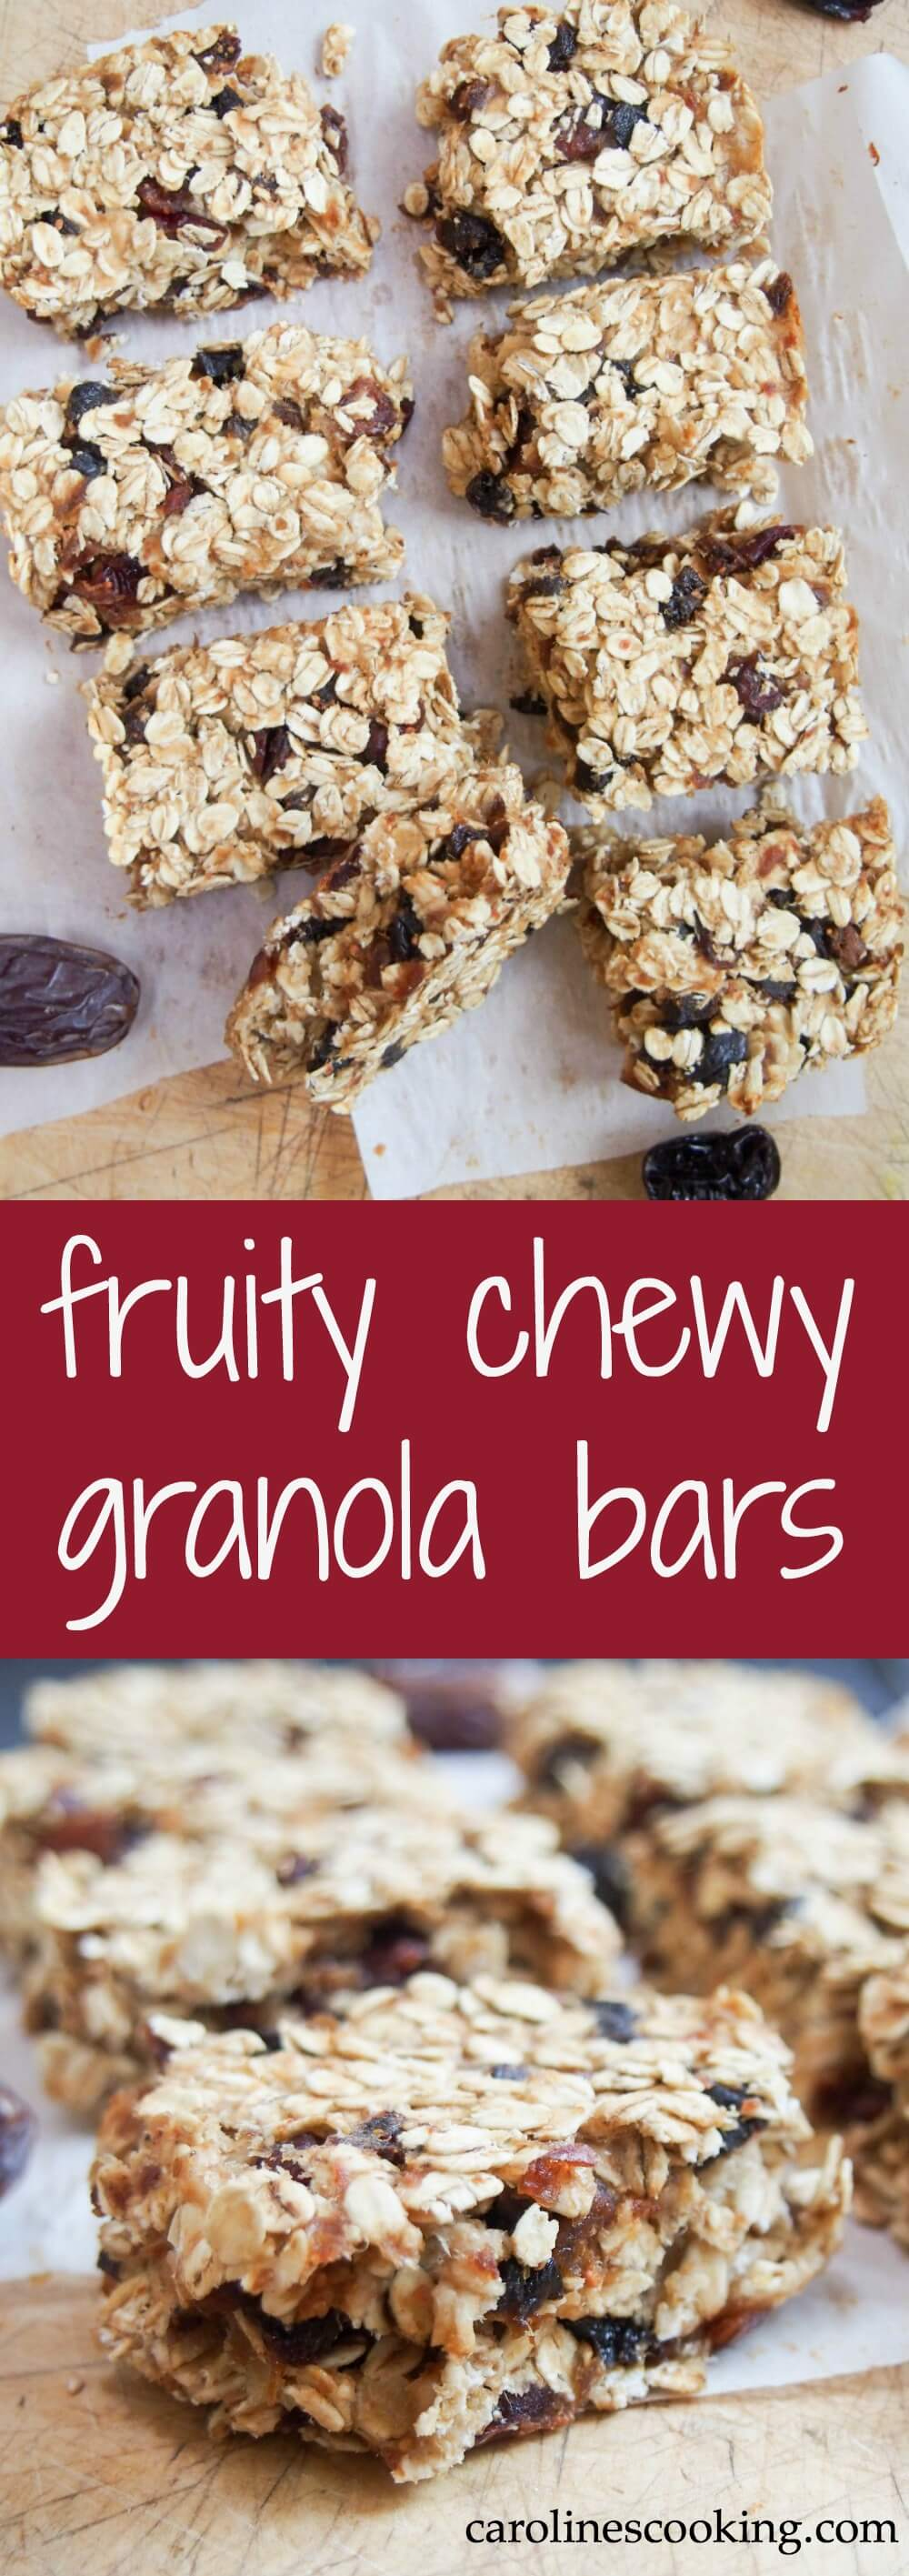 These fruity chewy granola bars are sweetened only with fruit, packed with fiber and easy to make. They make a great snack or grab and go breakfast.